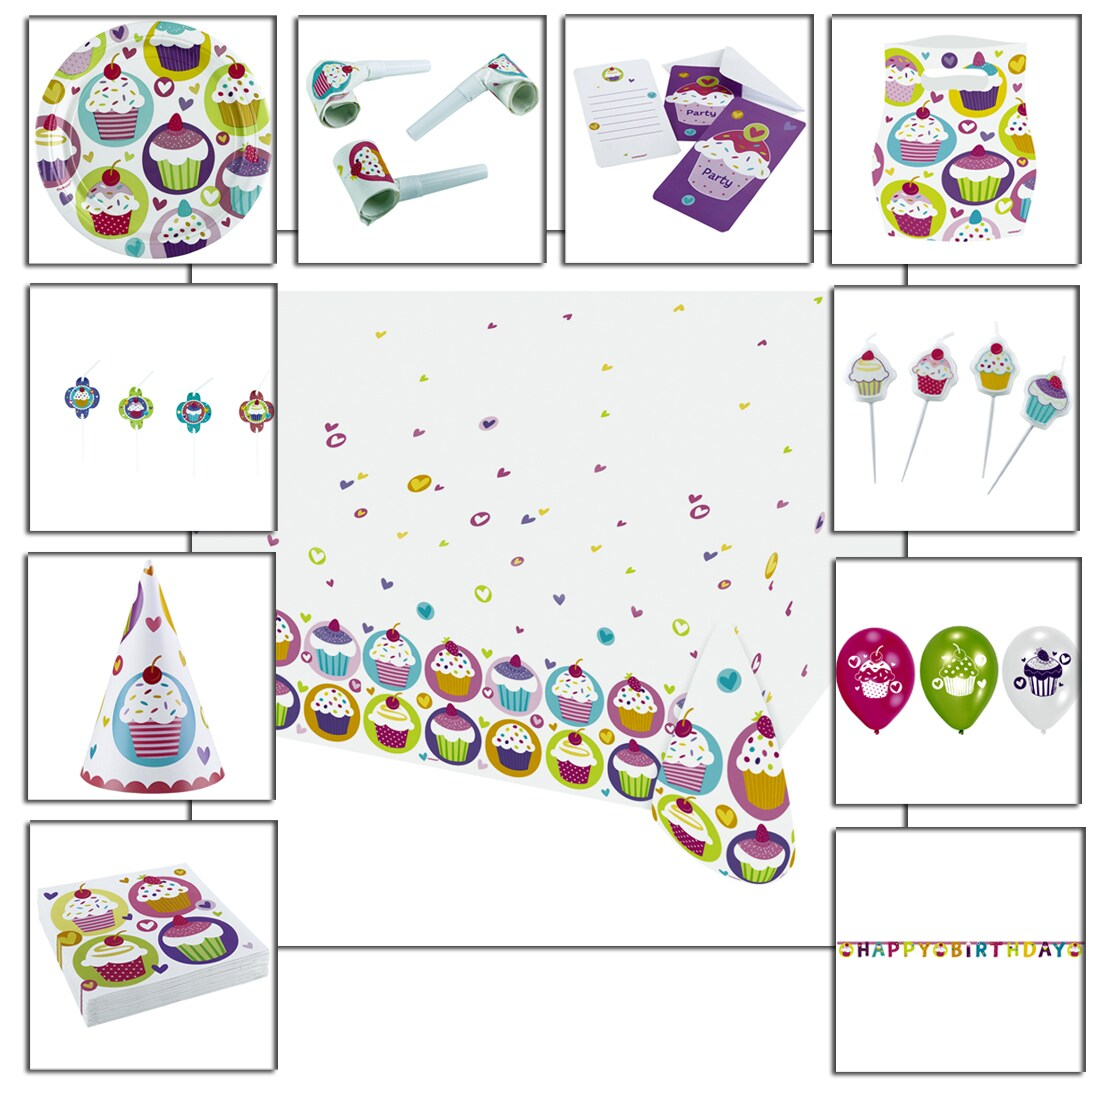 cupcake party deko set kindergeburtstag partydeko 2 49. Black Bedroom Furniture Sets. Home Design Ideas